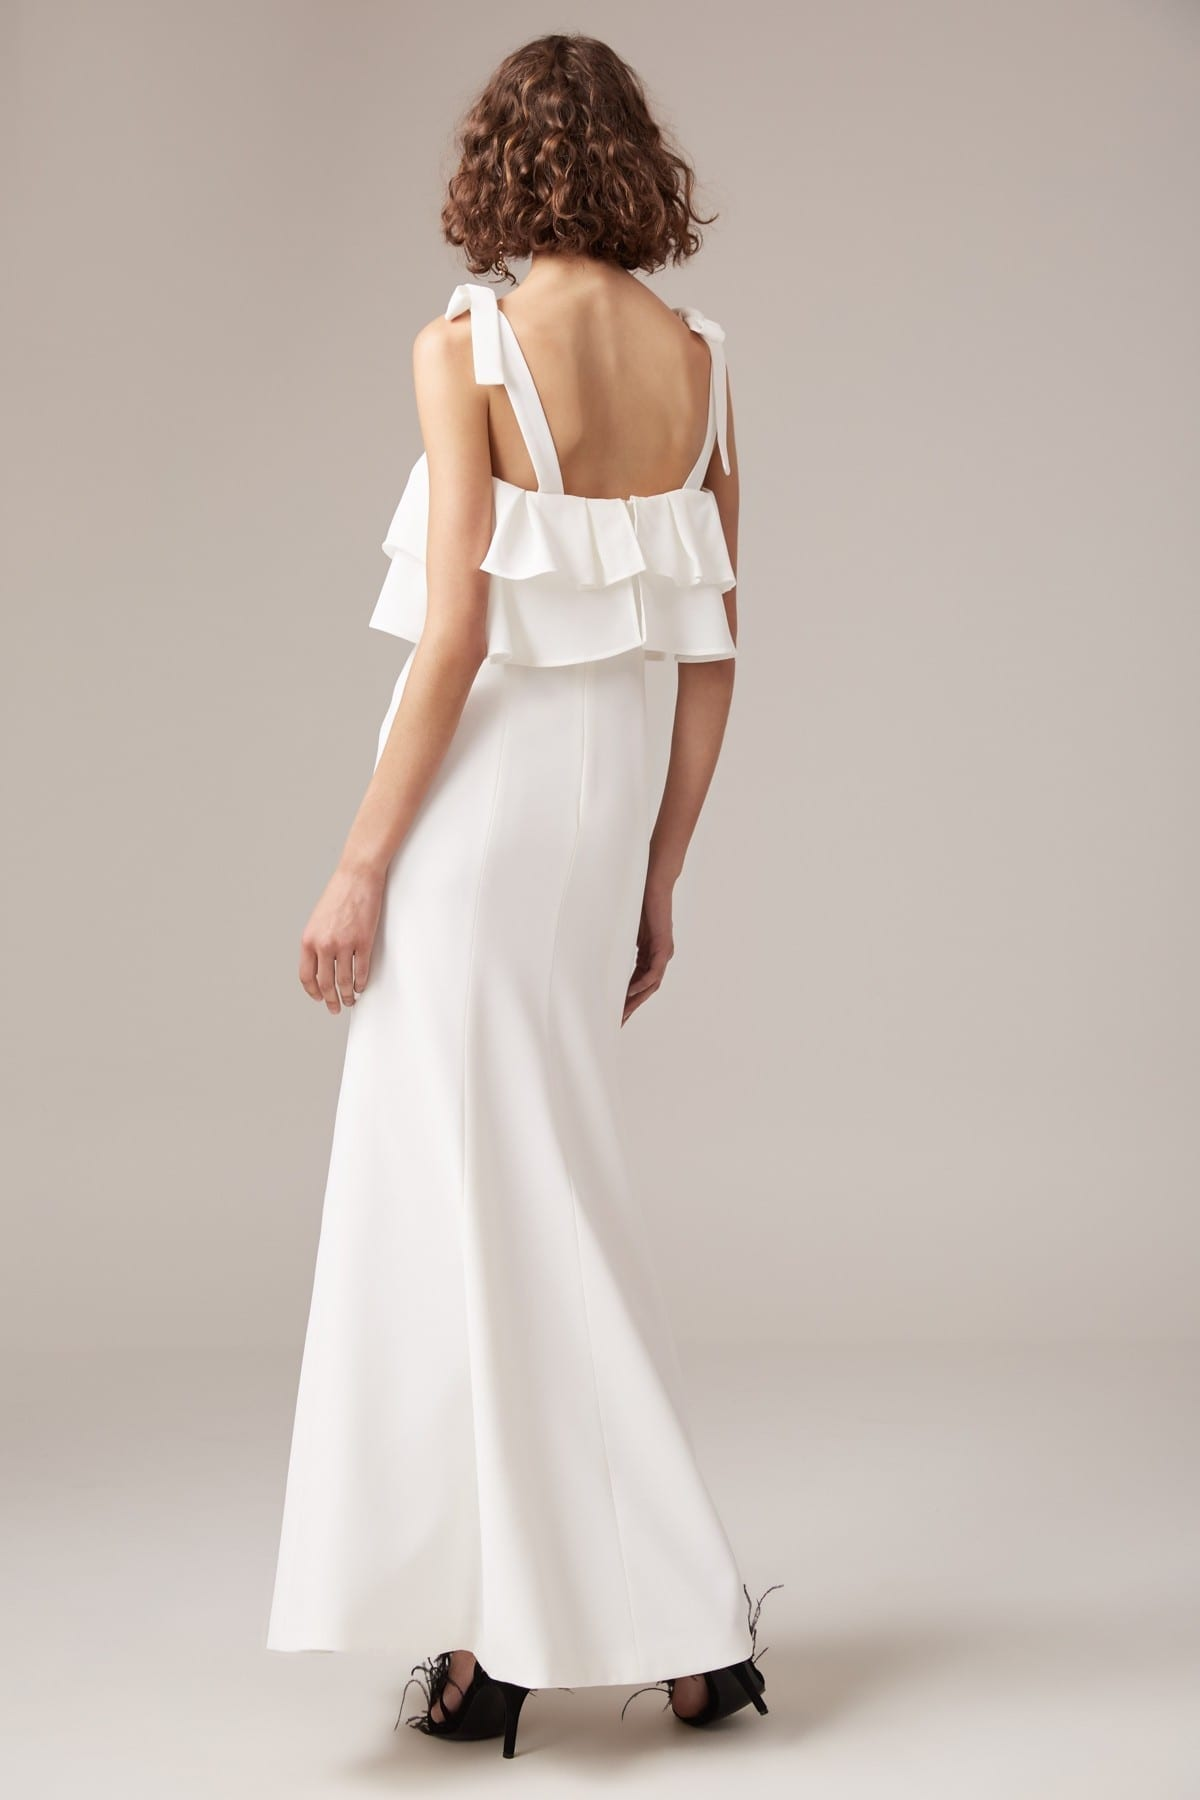 CMEO COLLECTIVE Be About You Ivory Gown 5